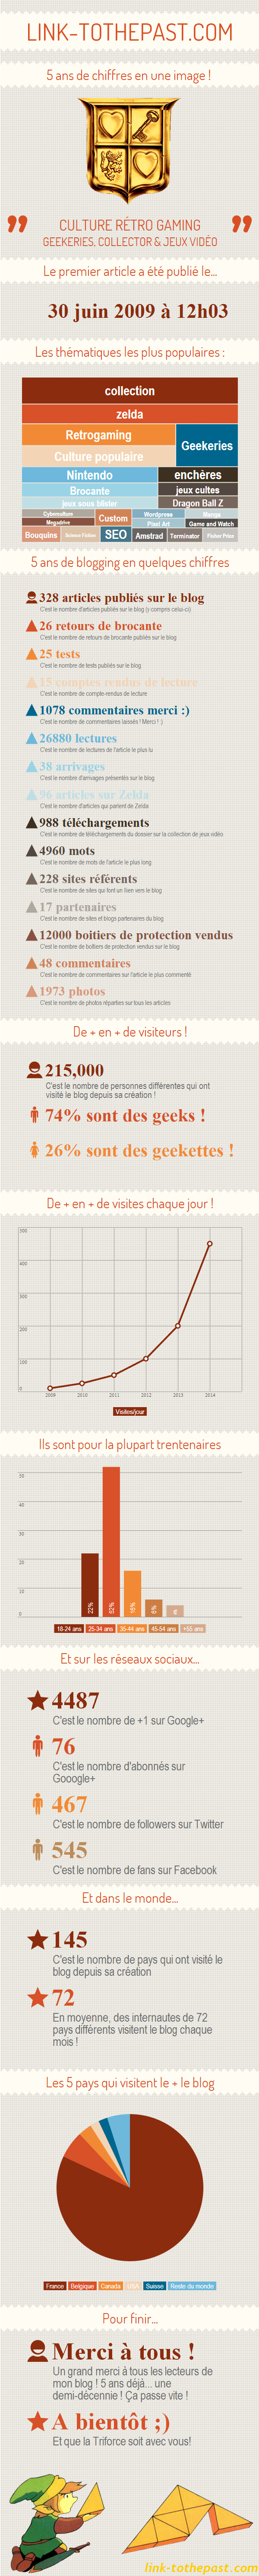 infographie-linktothepast-5ans